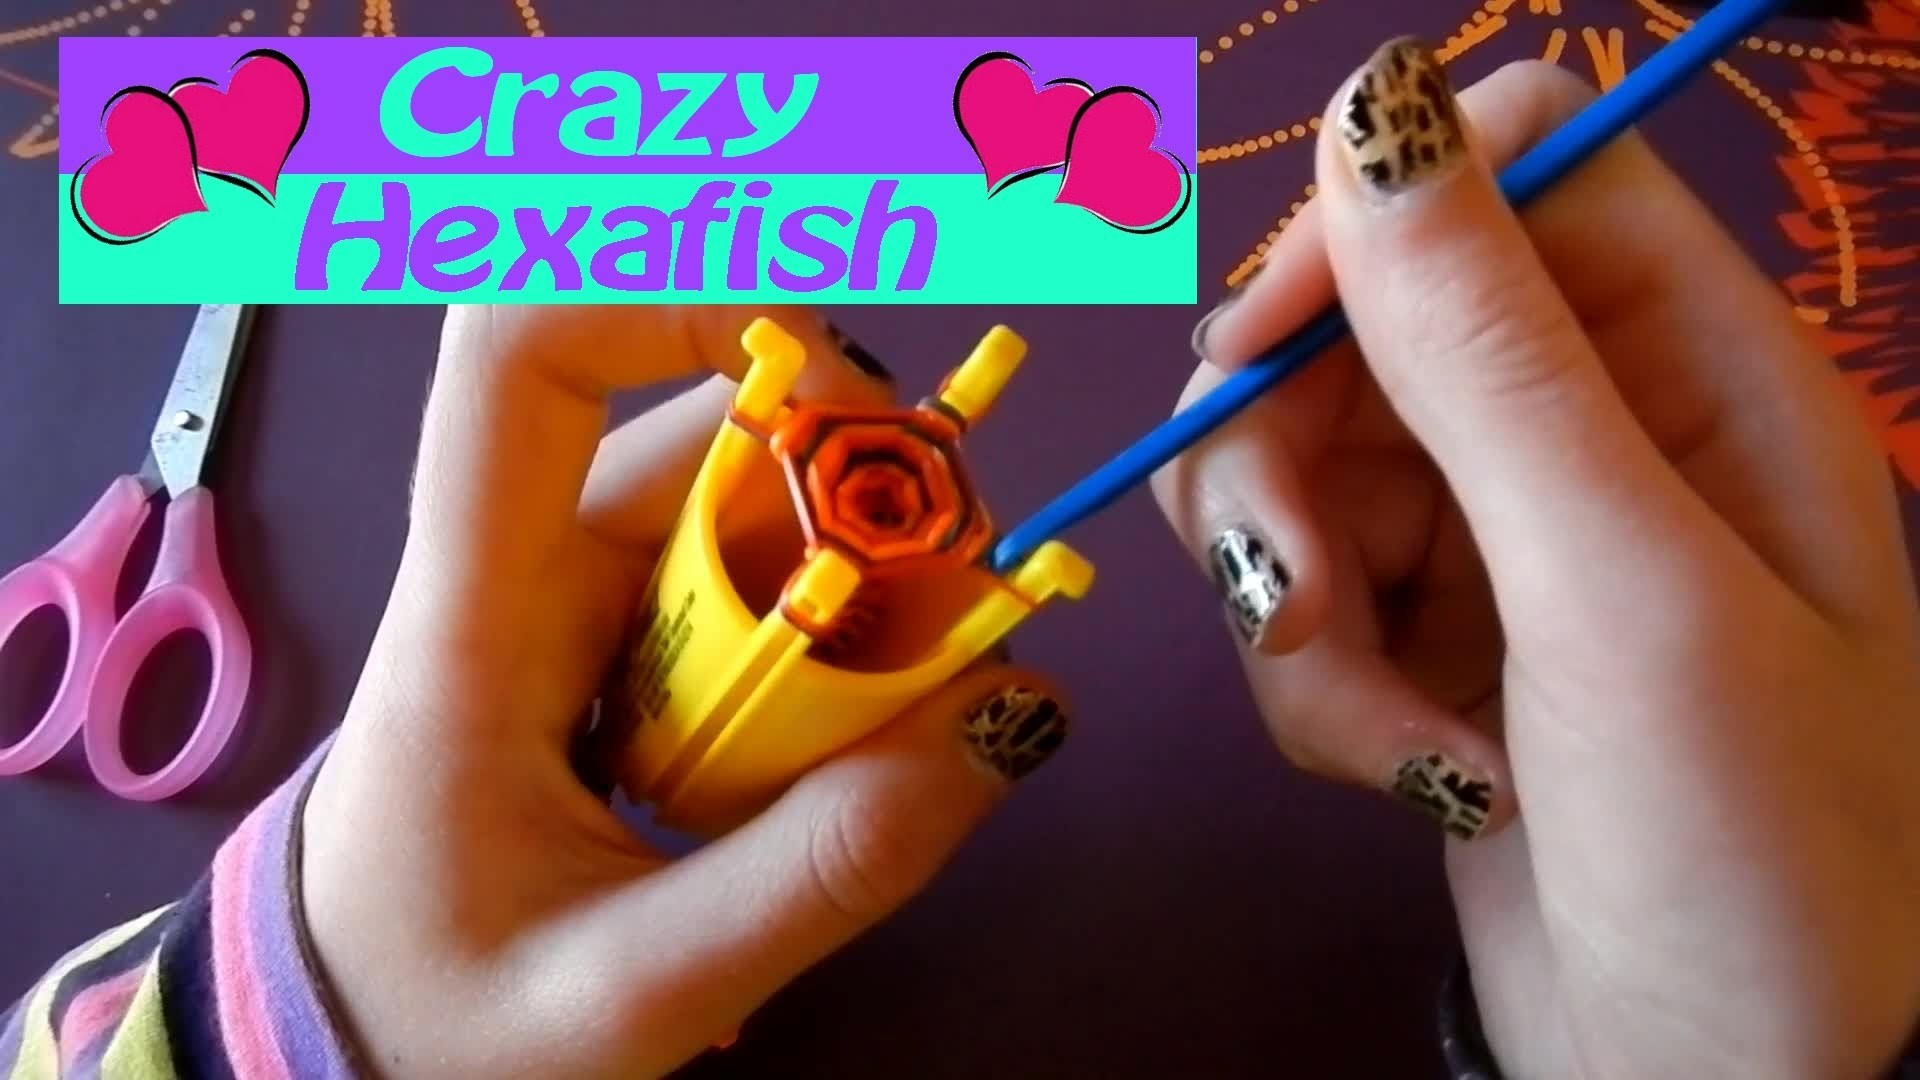 Comment faire. fabriquer facilement un bracelet Crazy Hexafish  de crazy loom